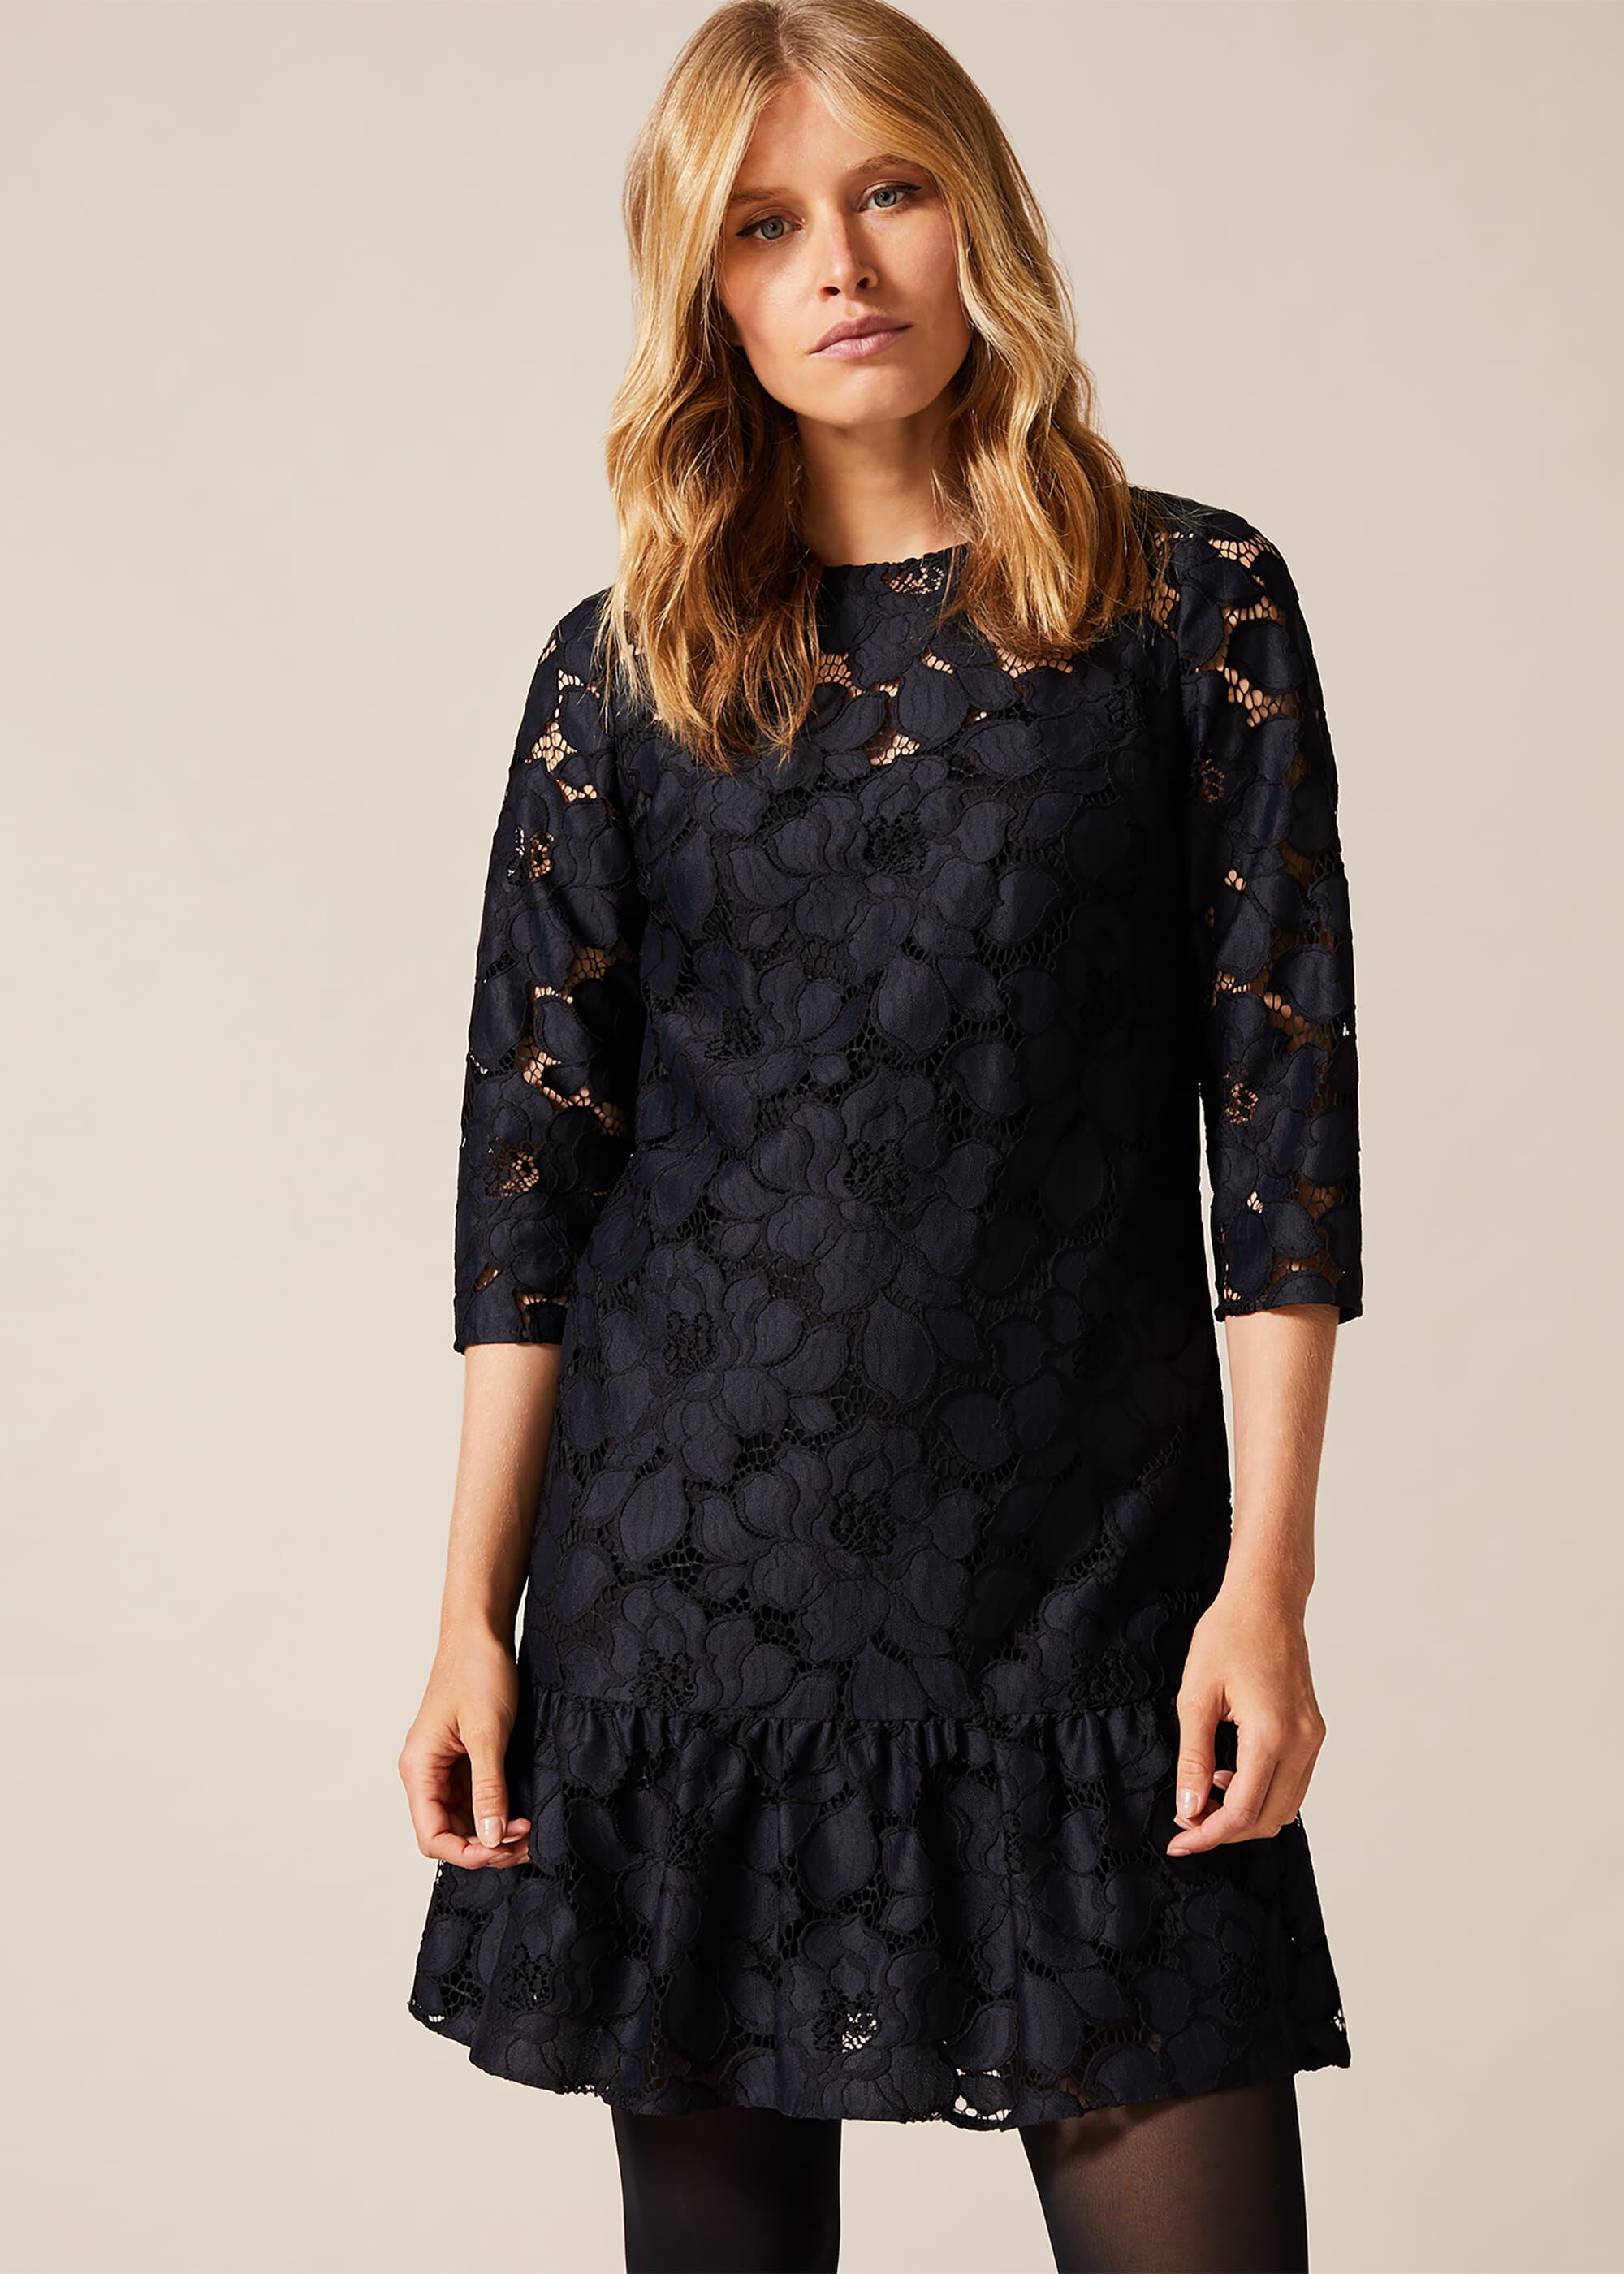 Phase Eight Arla Lace Dress, Black, Shift, Occasion Dress